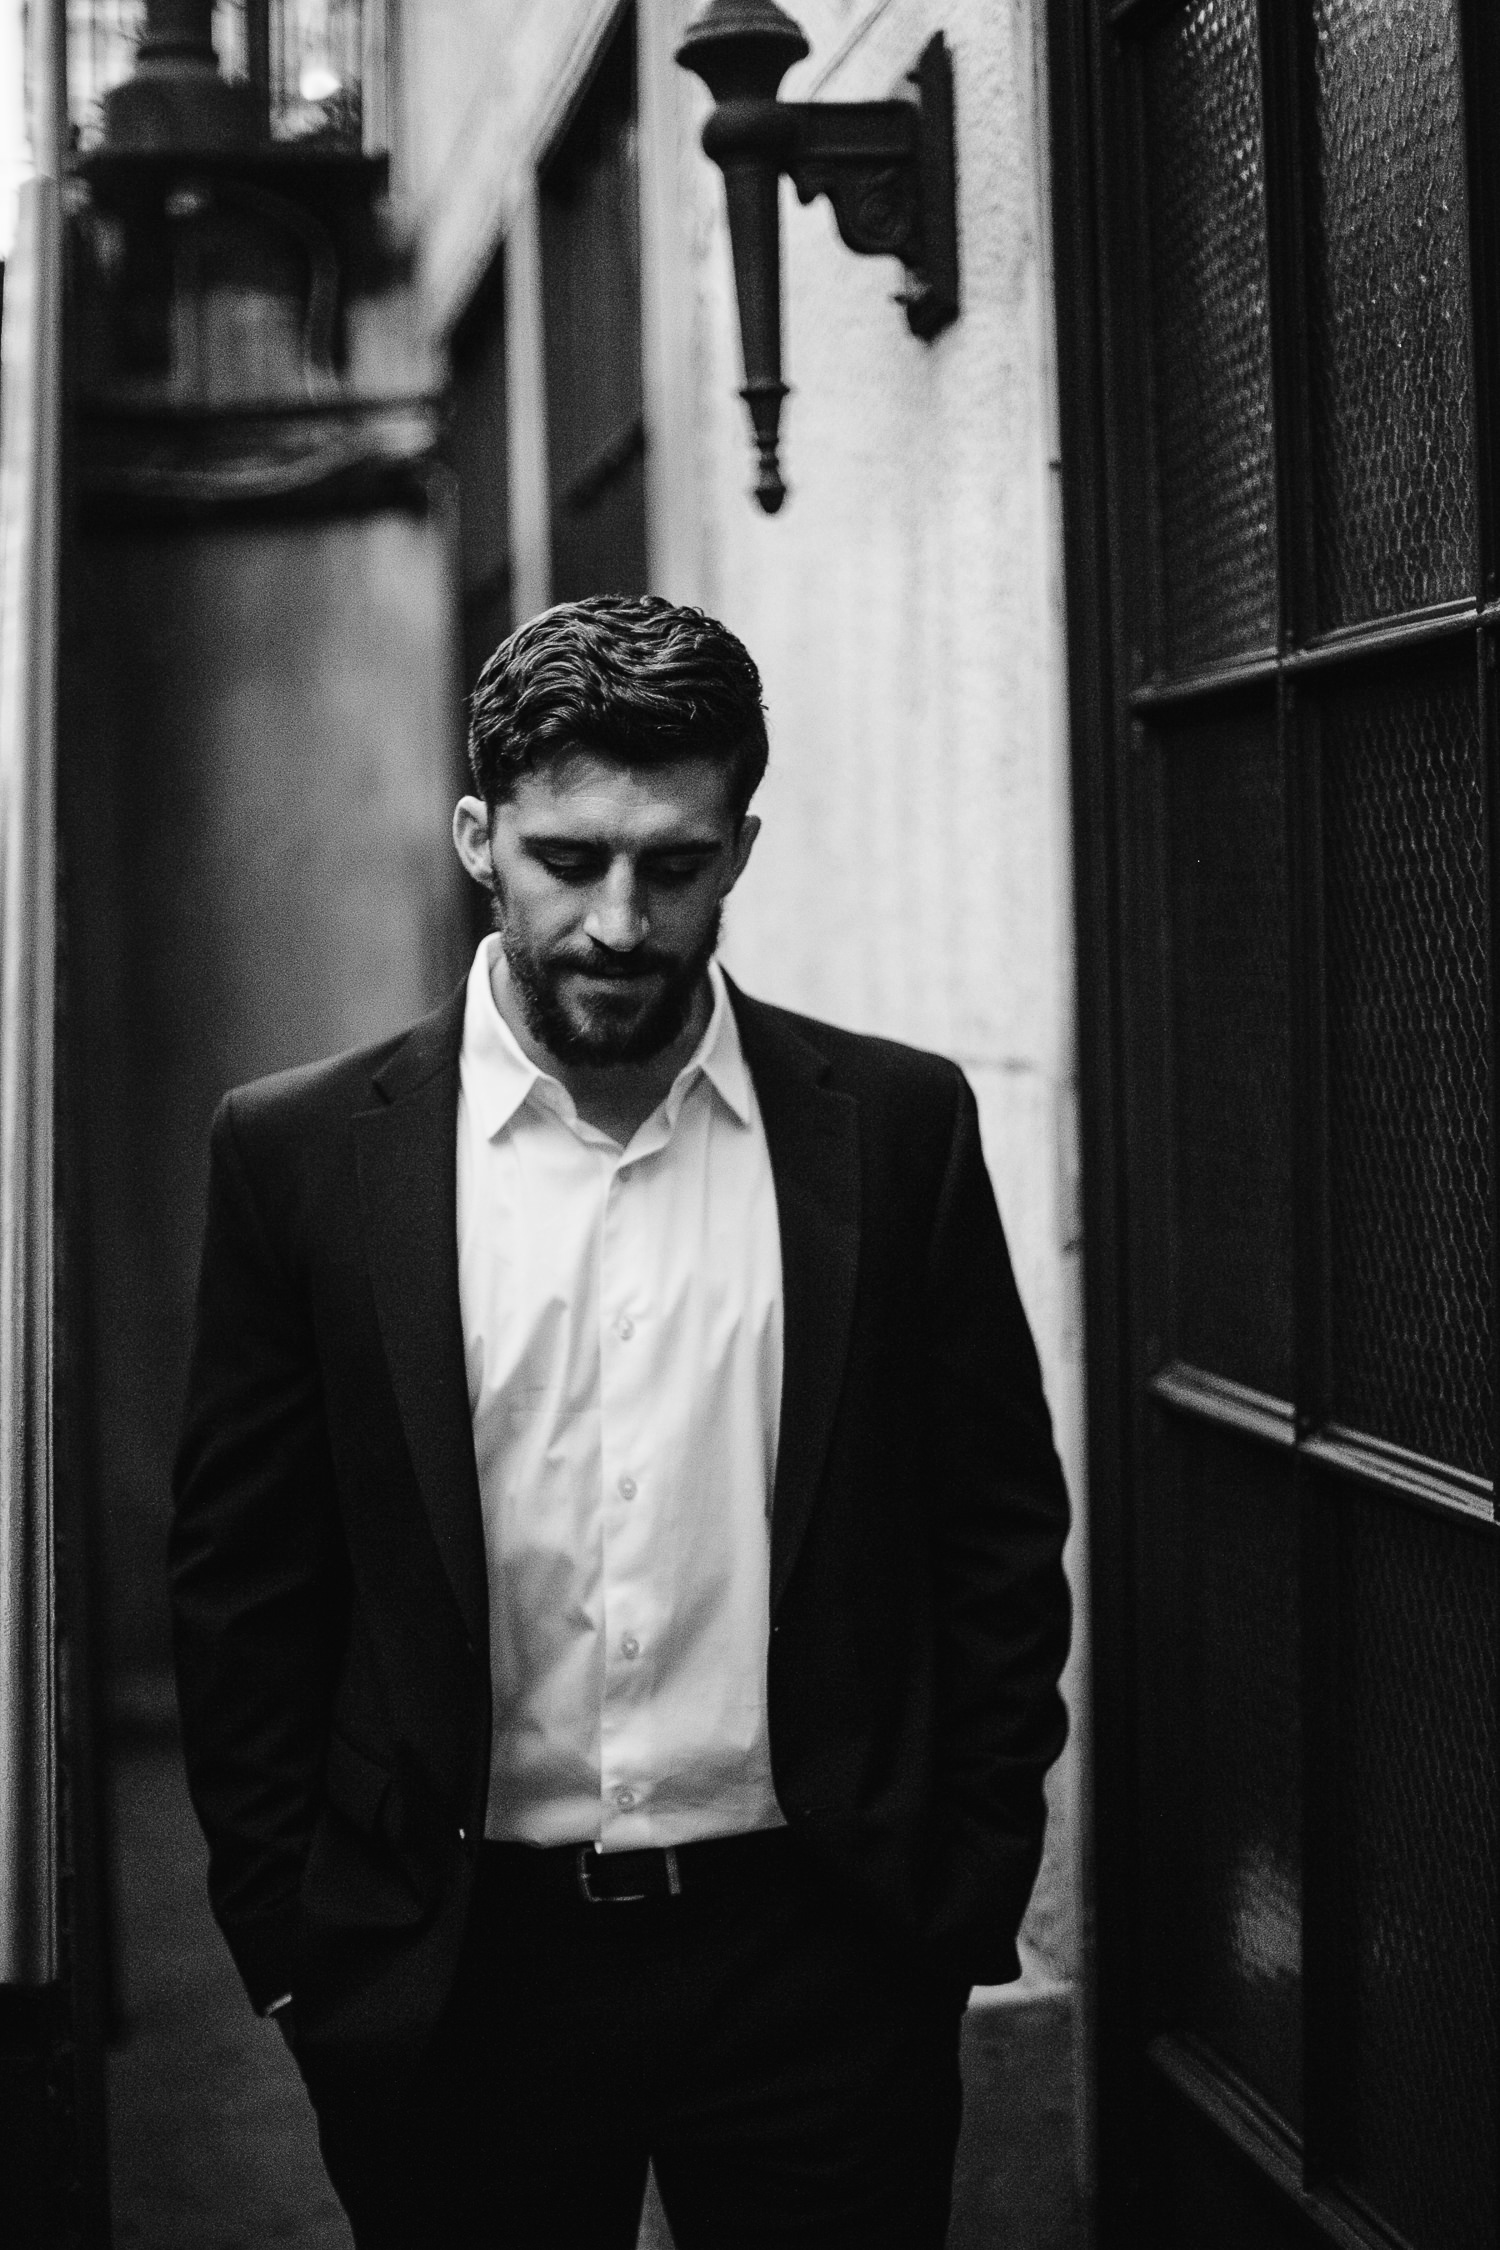 moody black and white groom photo